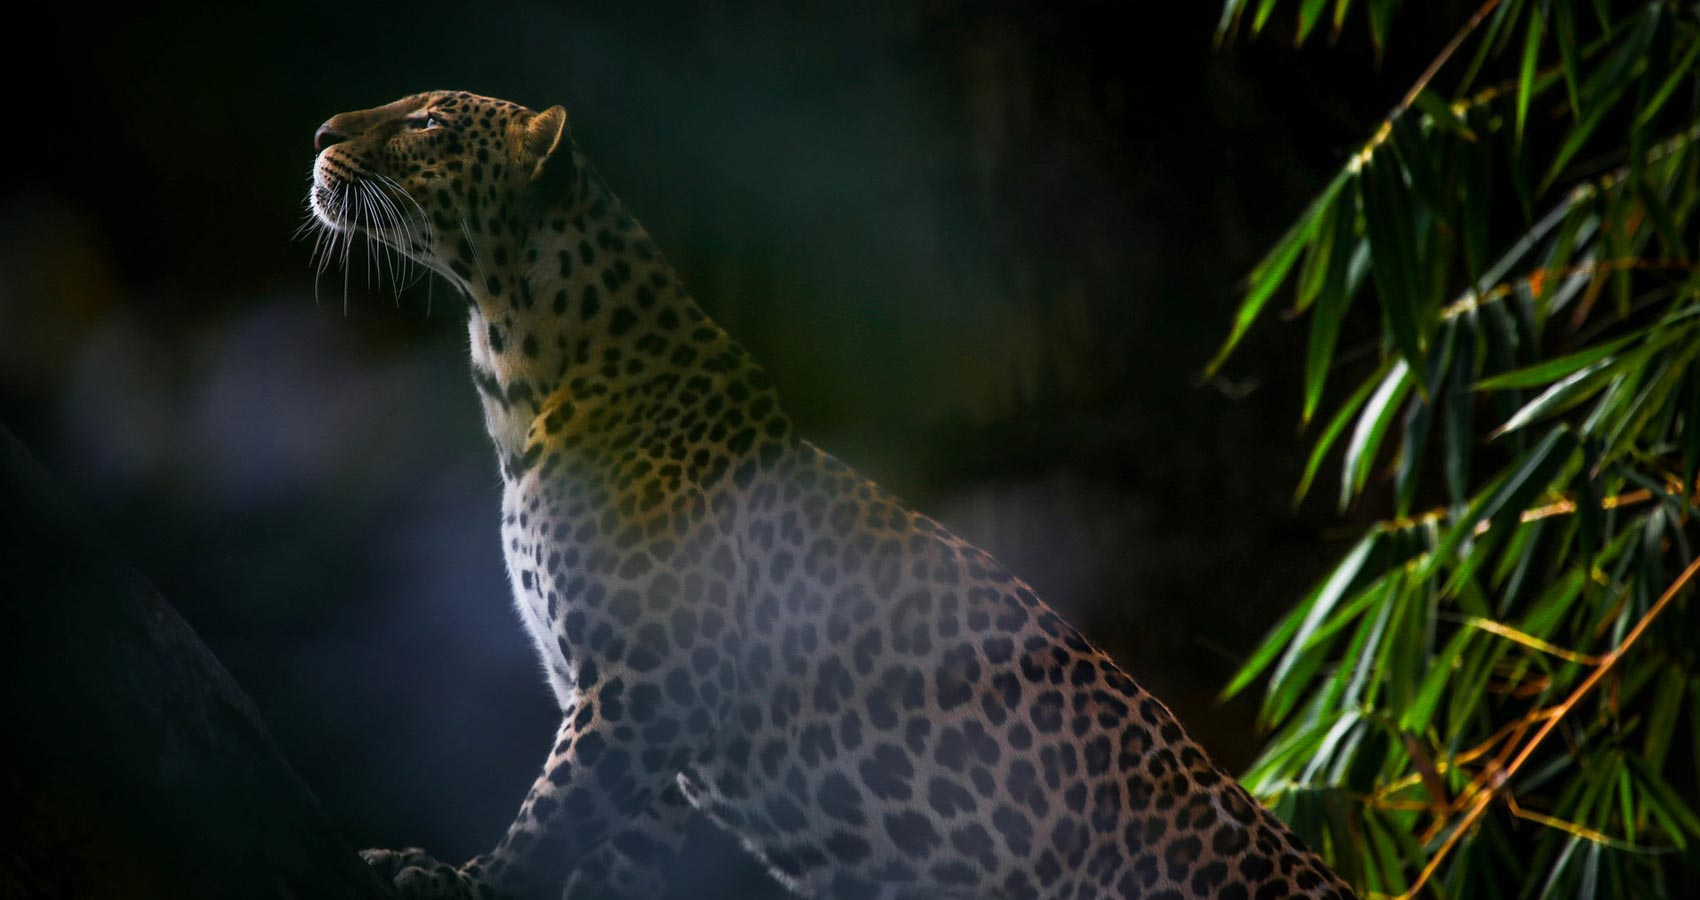 The Spots' Leopard, a poem written by Away With Words at Spillwords.com